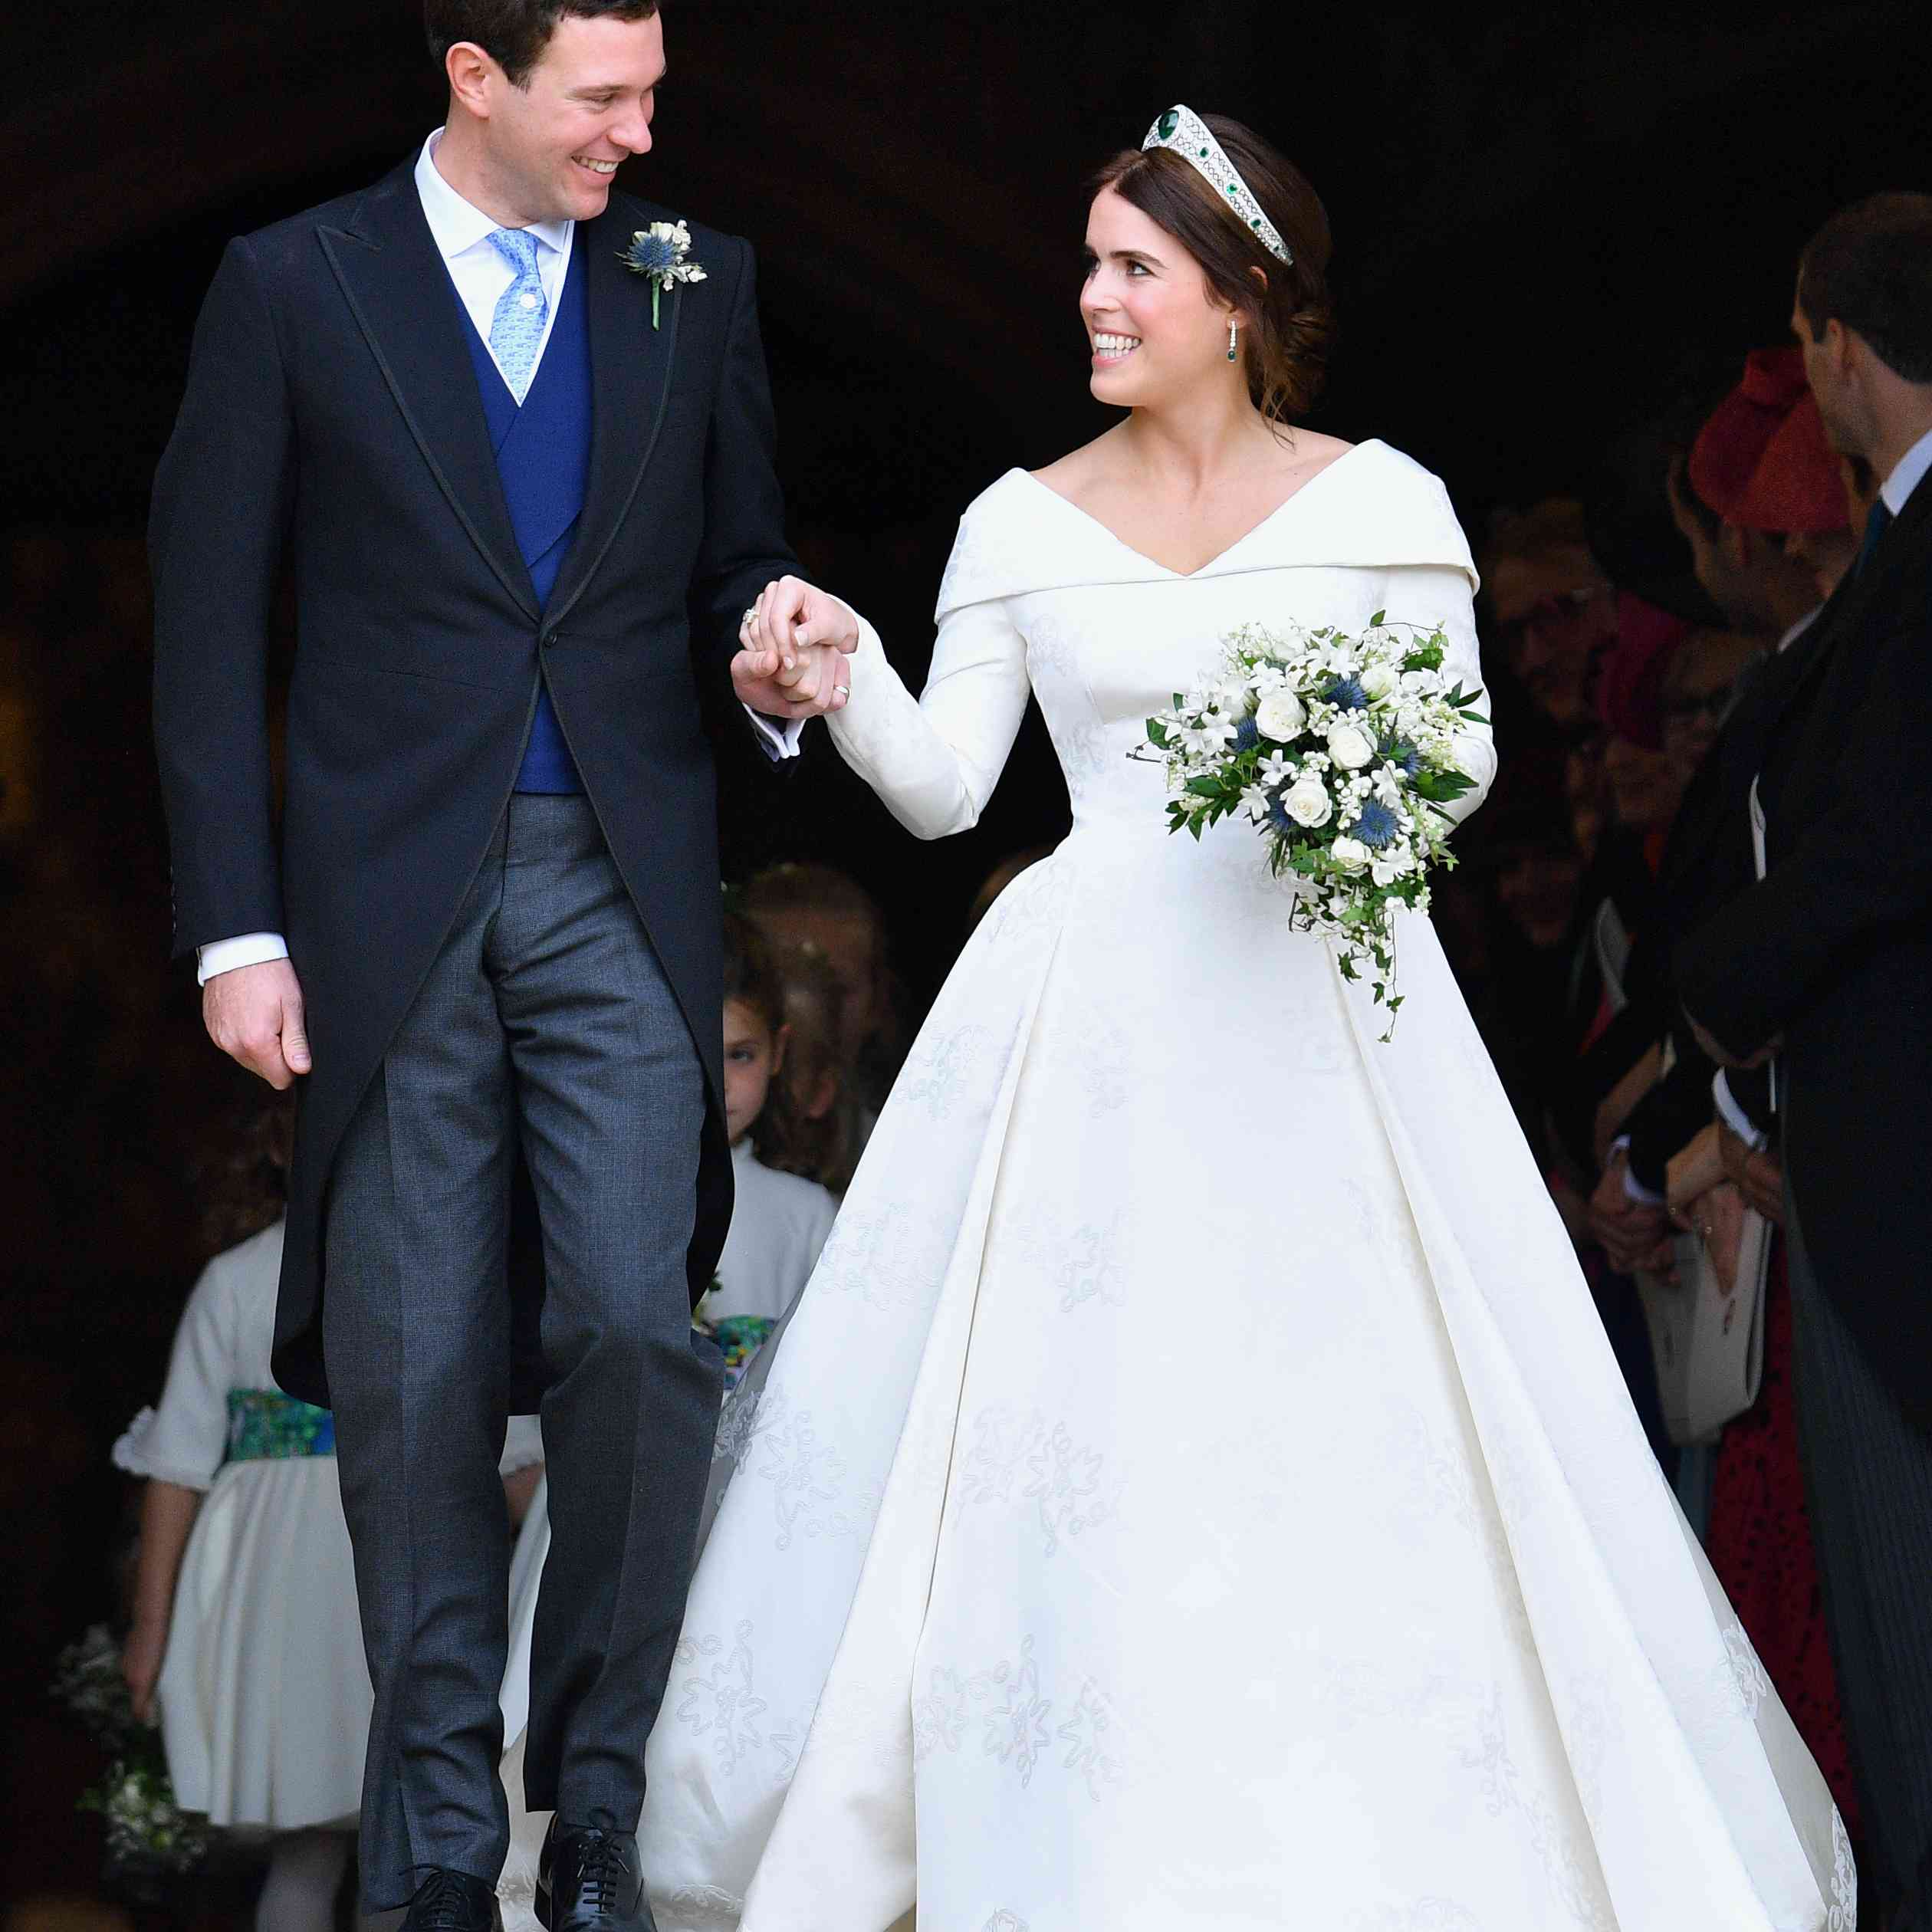 39 Of The Most Iconic Royal Wedding Dresses Throughout History,Wedding Kashees Bridal Dresses 2020